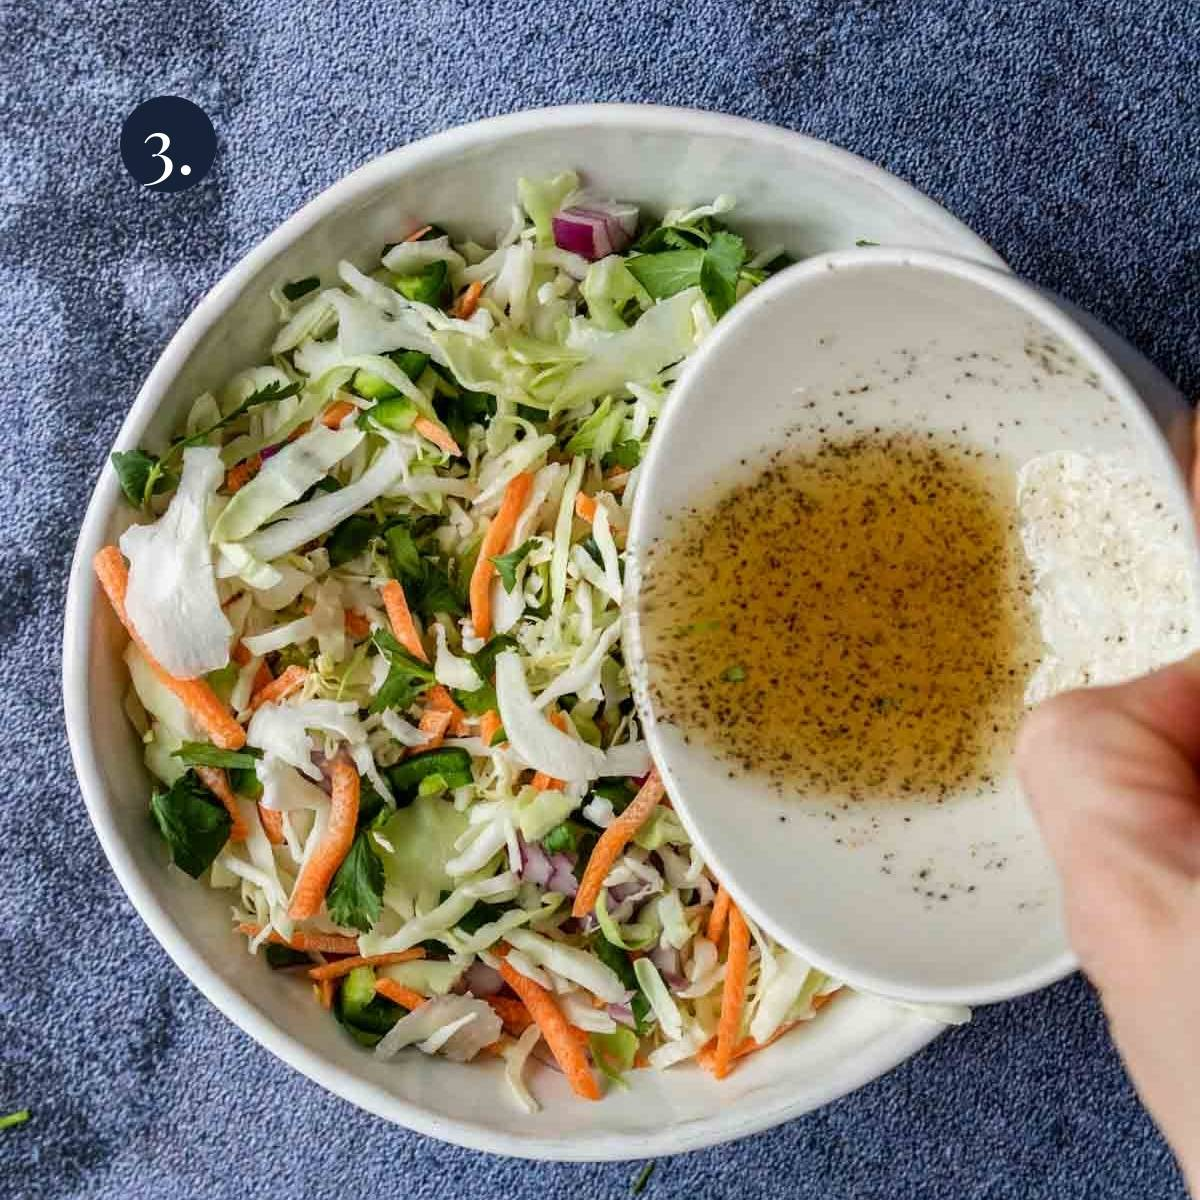 pouring dressing over slaw